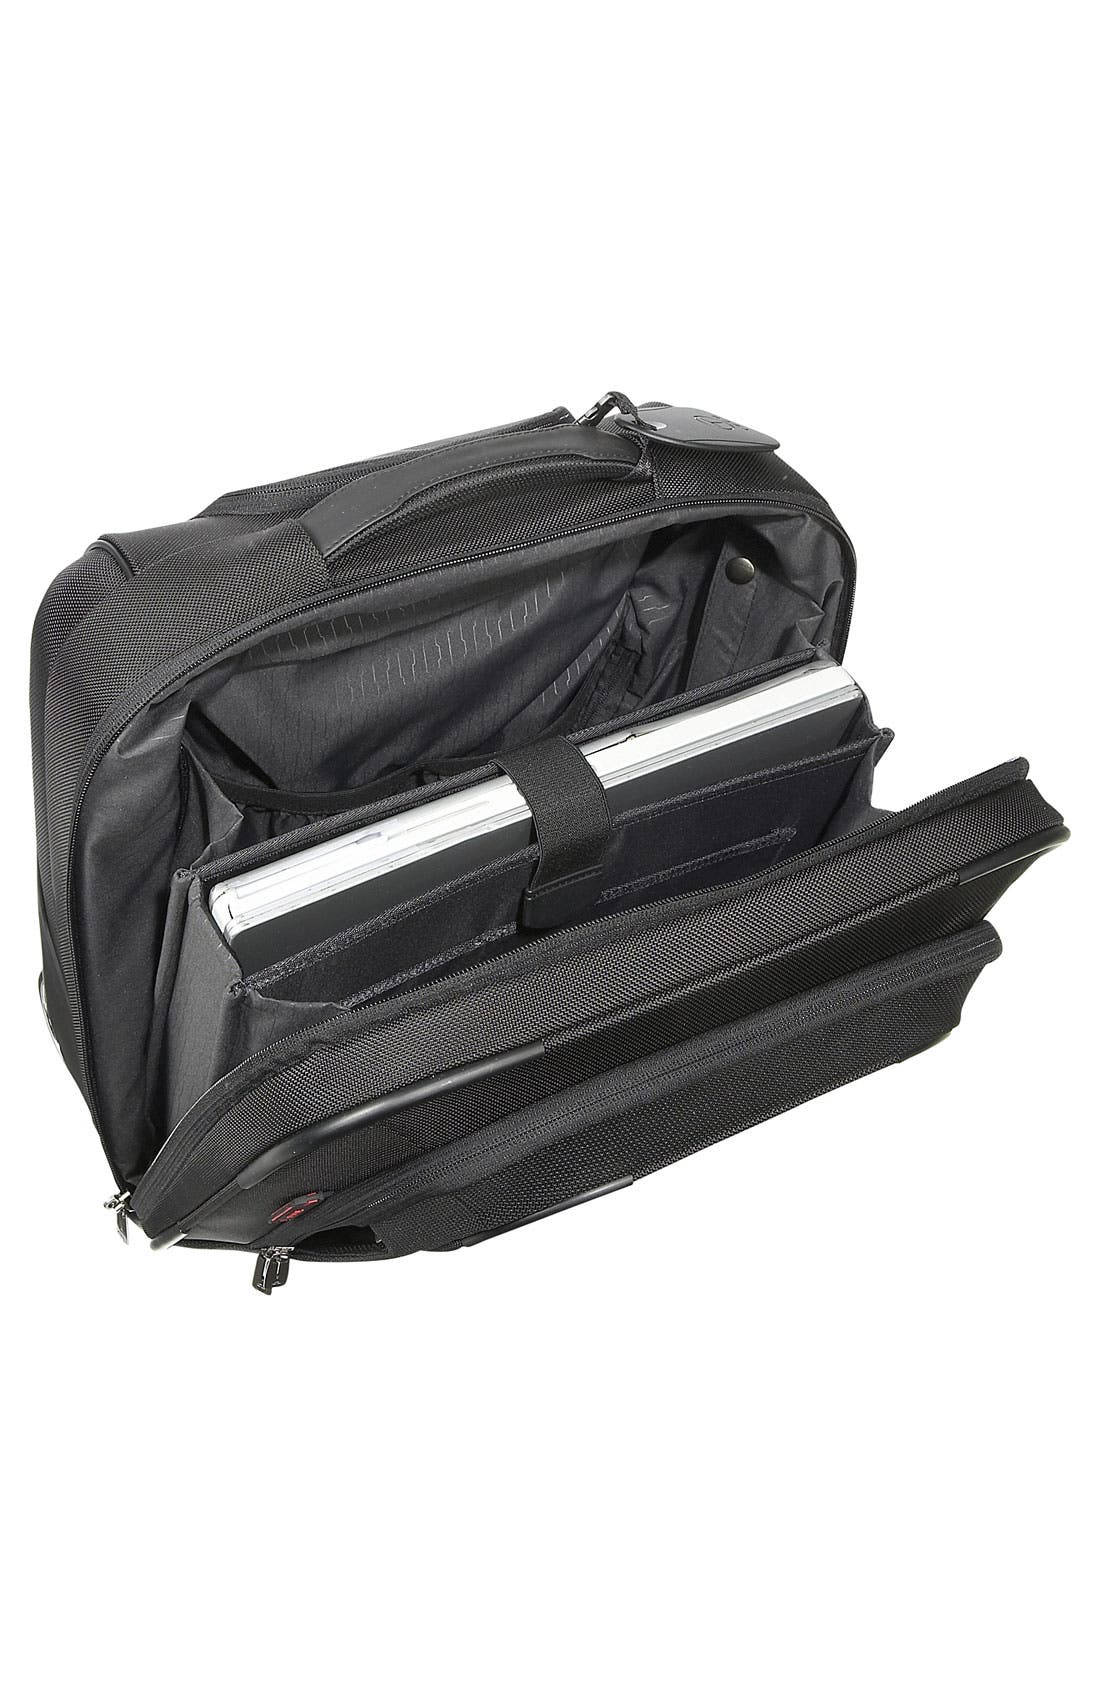 Alternate Image 3  - T-Tech by Tumi 'Presidio MacArthur' Wheeled Compact Laptop Briefcase